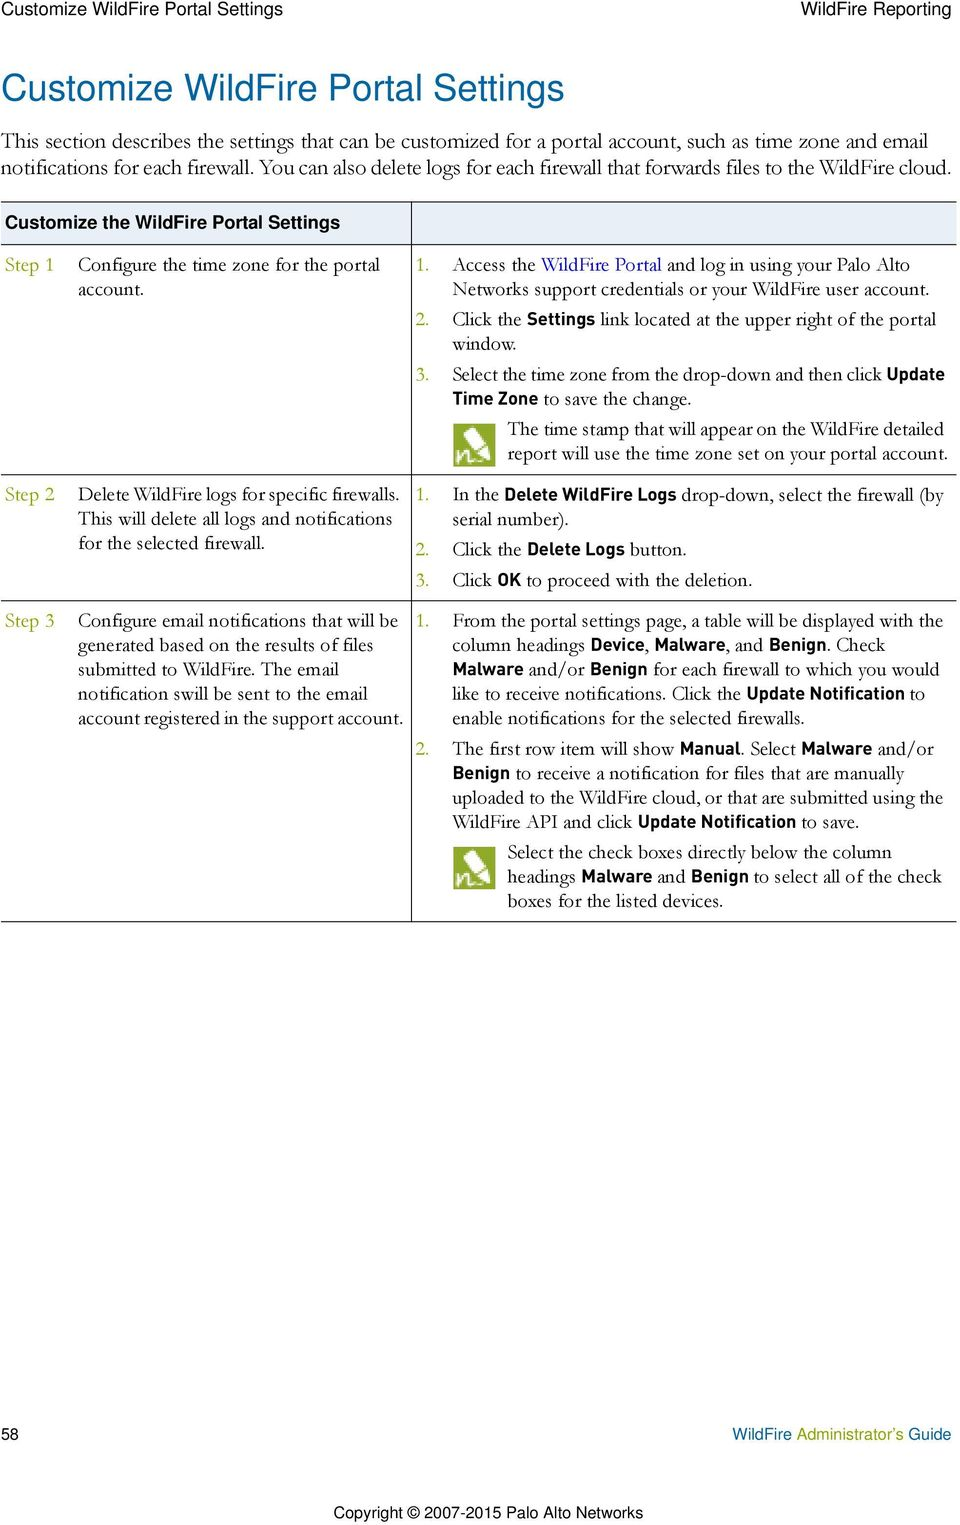 WildFire Reporting  WildFire Administrator s Guide 55